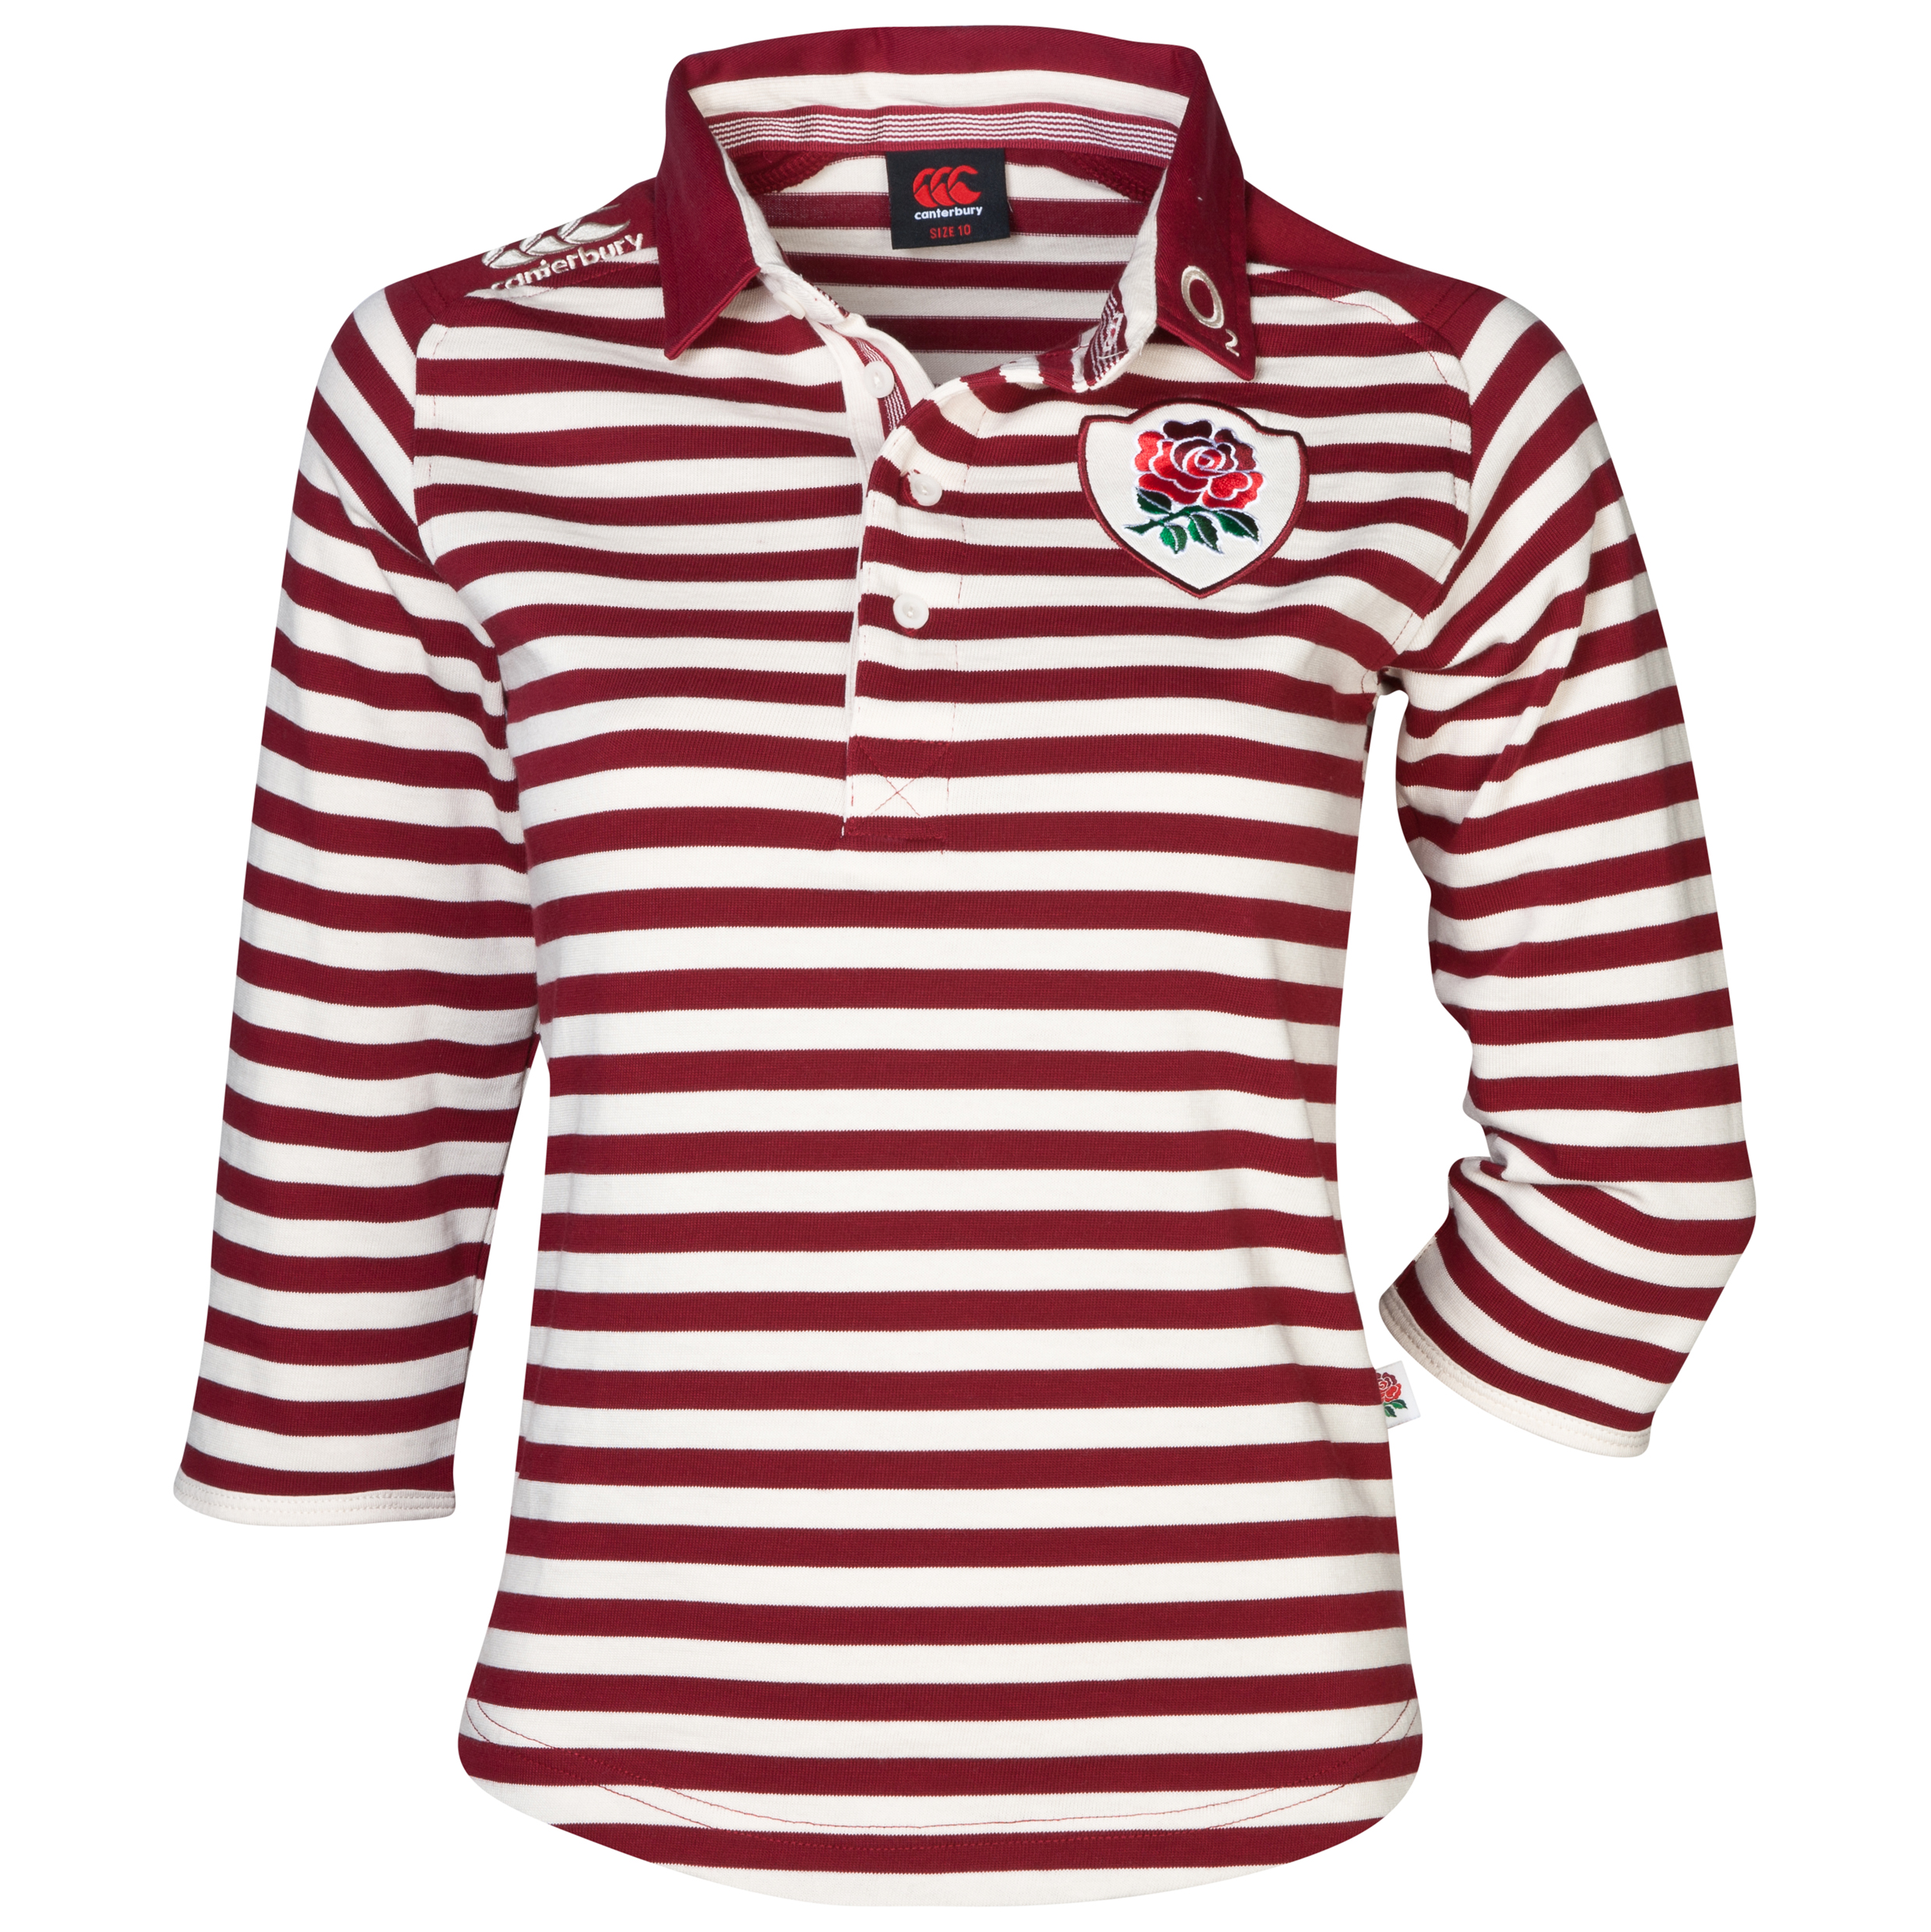 England Alternate Rugby Classic 3/4 Sleeve Shirt 2013/14 - Womens